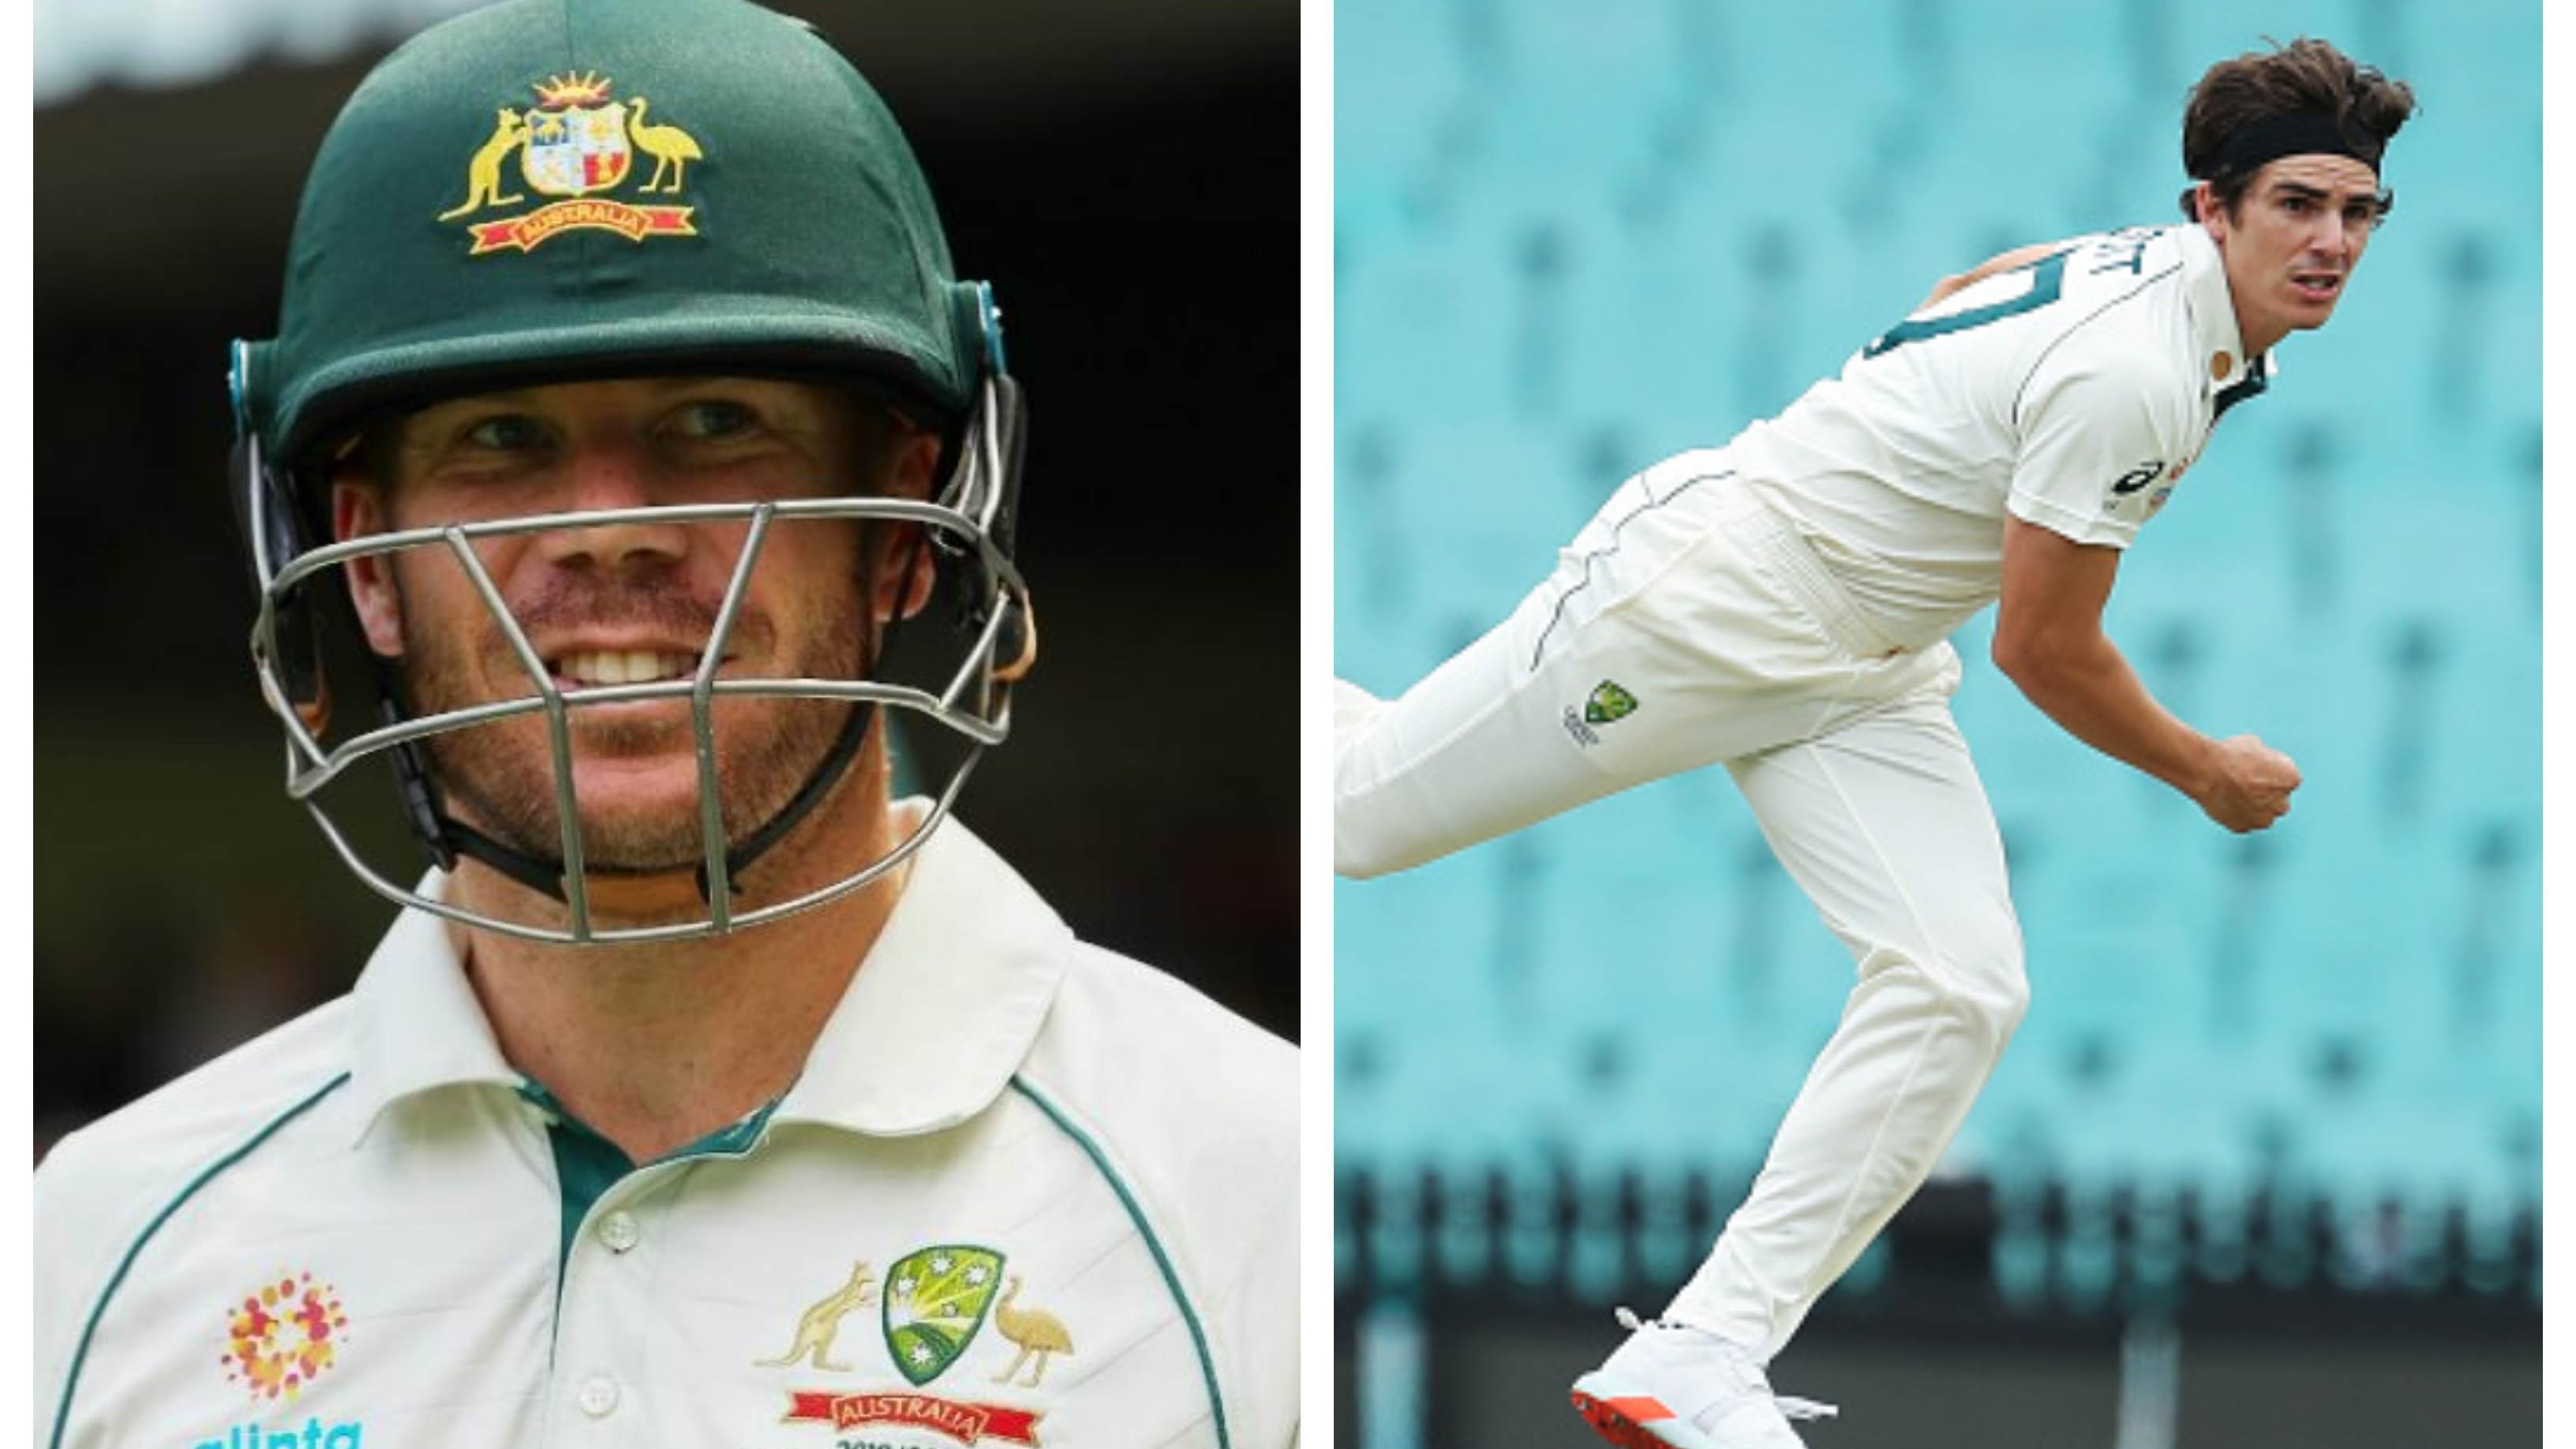 AUS v IND 2020-21: Warner, Abbott fly to Melbourne ahead of schedule as COVID-19 cases grow in Sydney